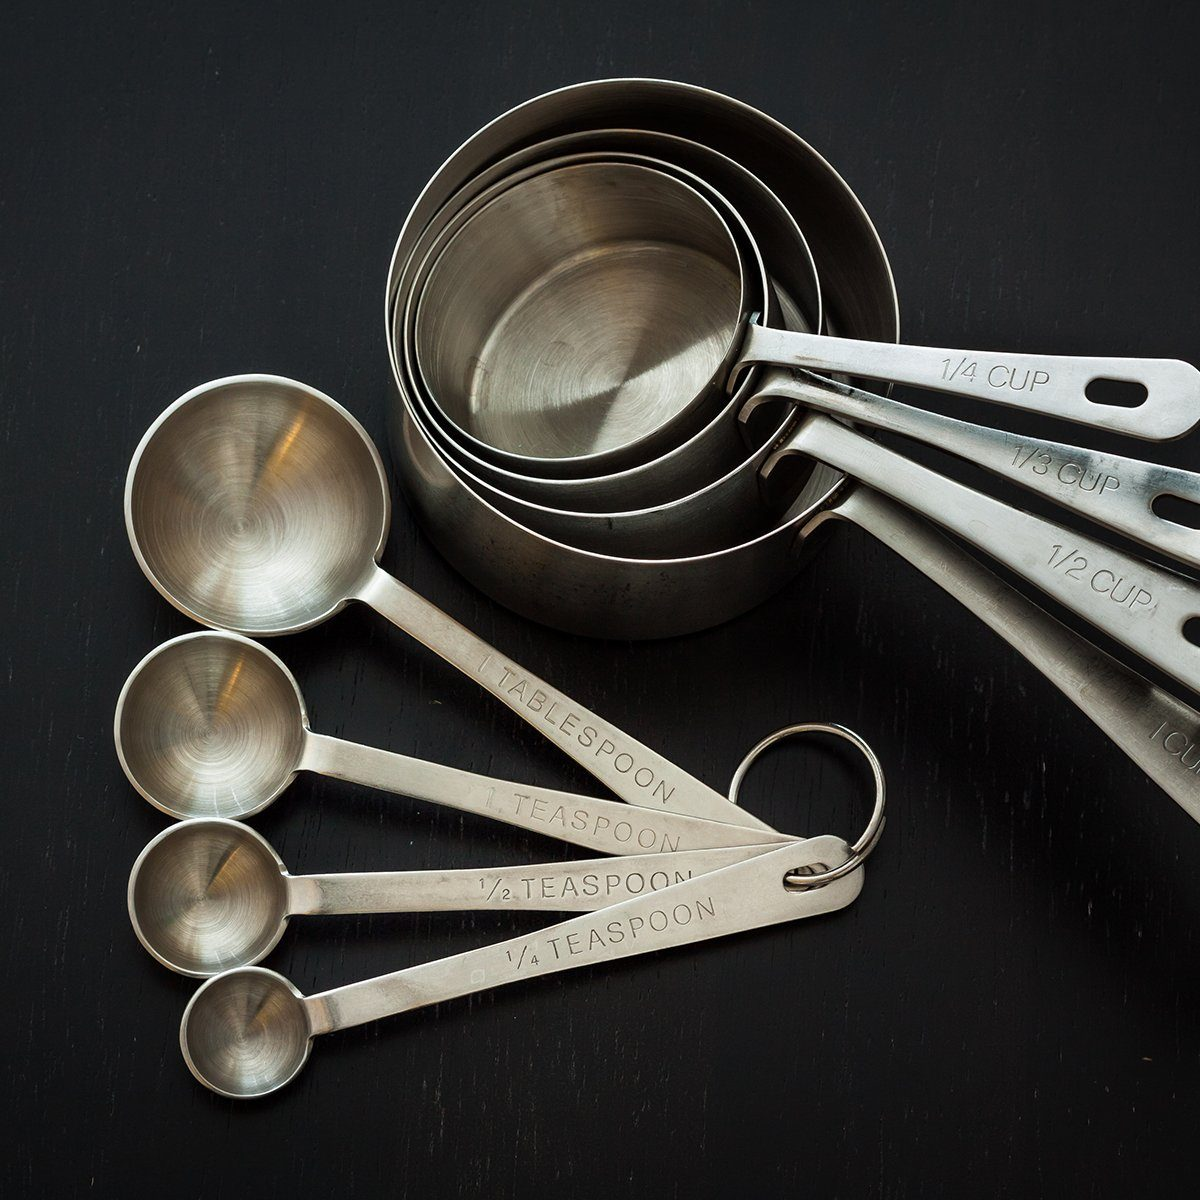 Measuring cups and spoons with a dark background.